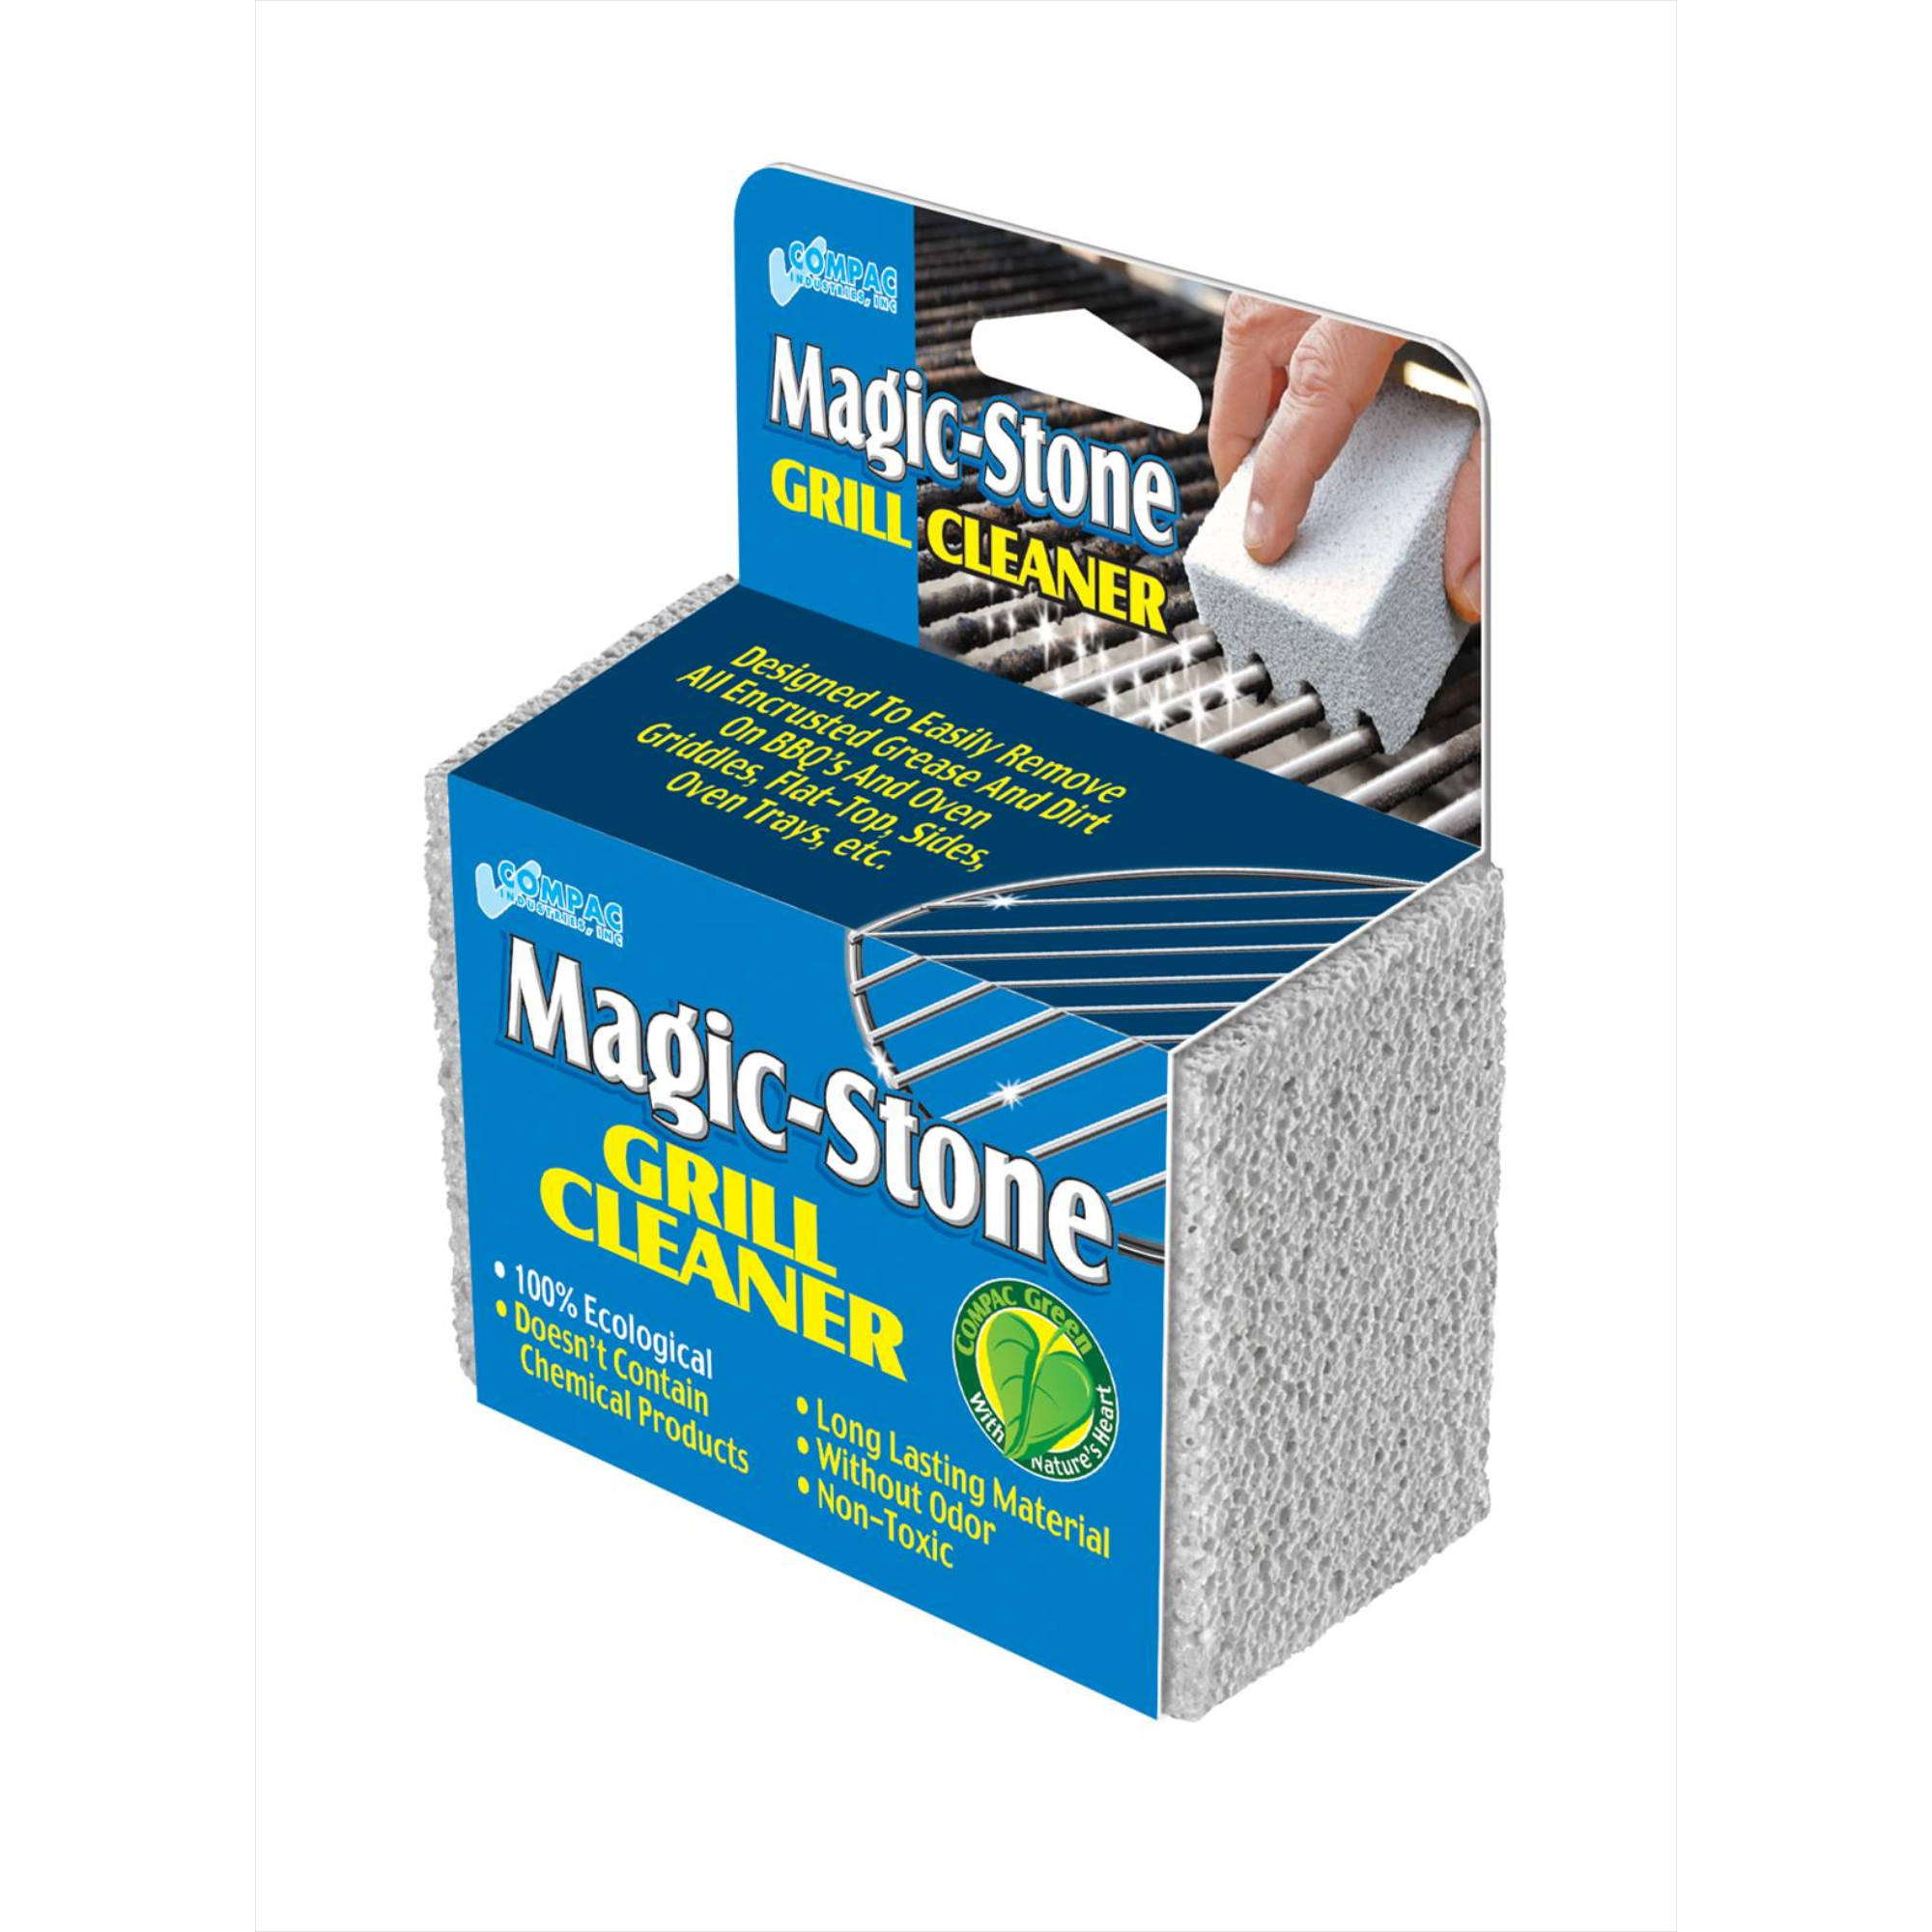 Magic-Stone Grill Cleaner